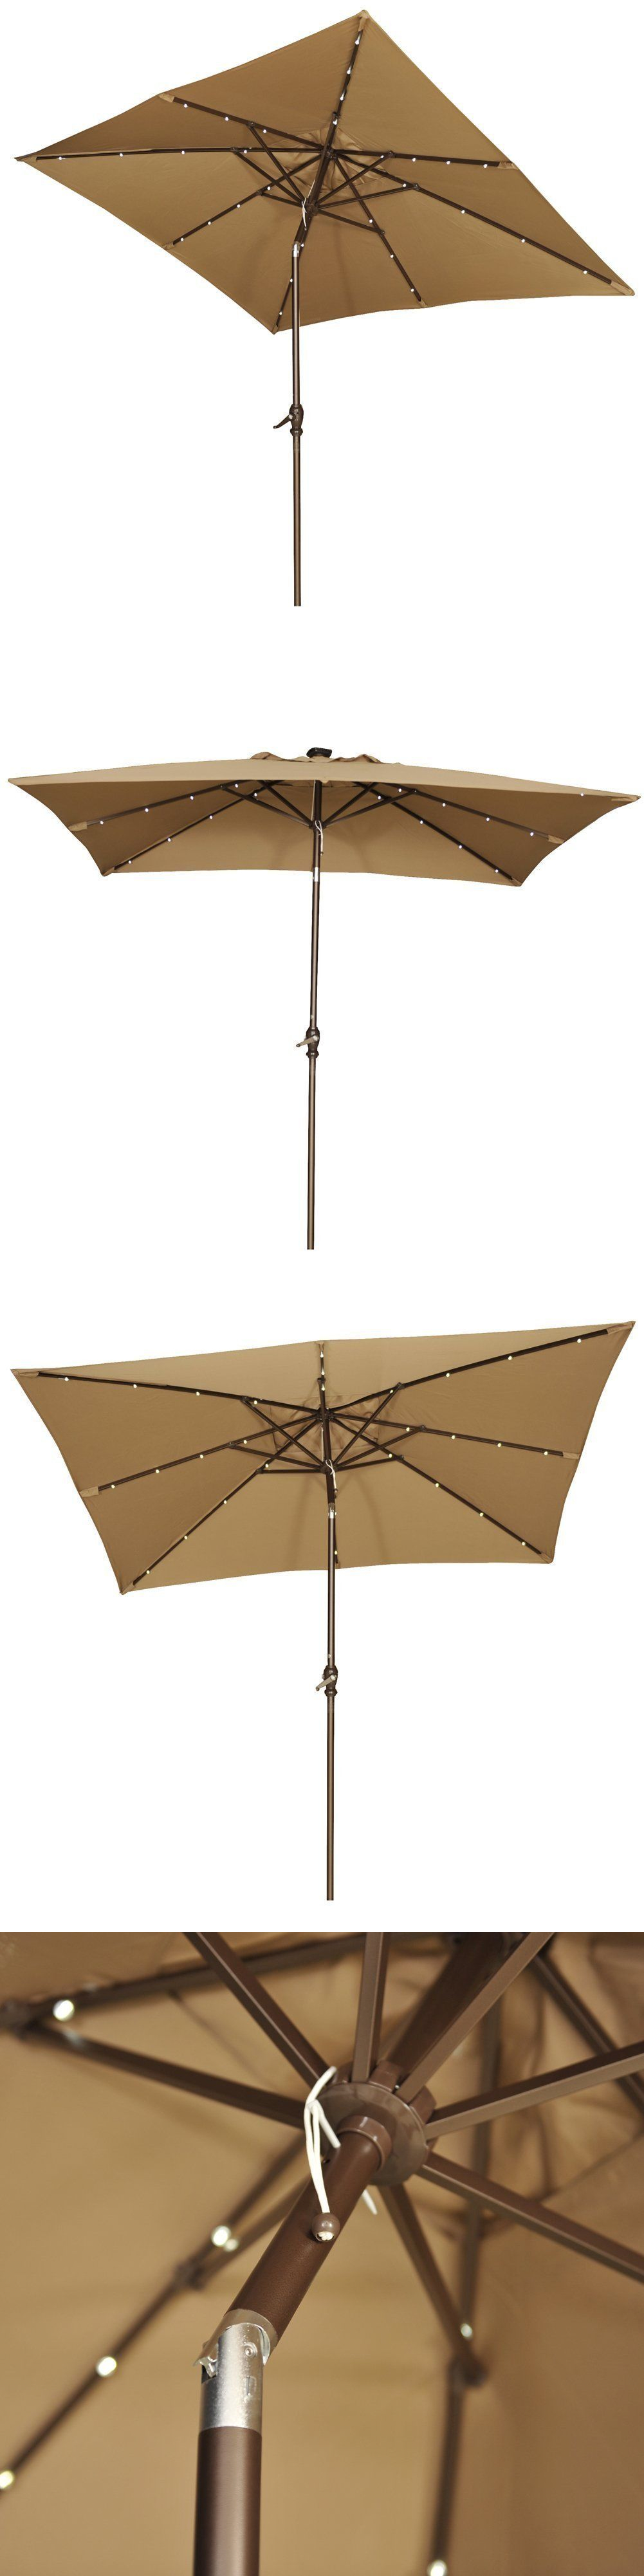 Rectangular Patio Umbrella With Solar Lights Umbrellas 180998 7X9 Ft Rectangular Patio Umbrella W Solar Powered